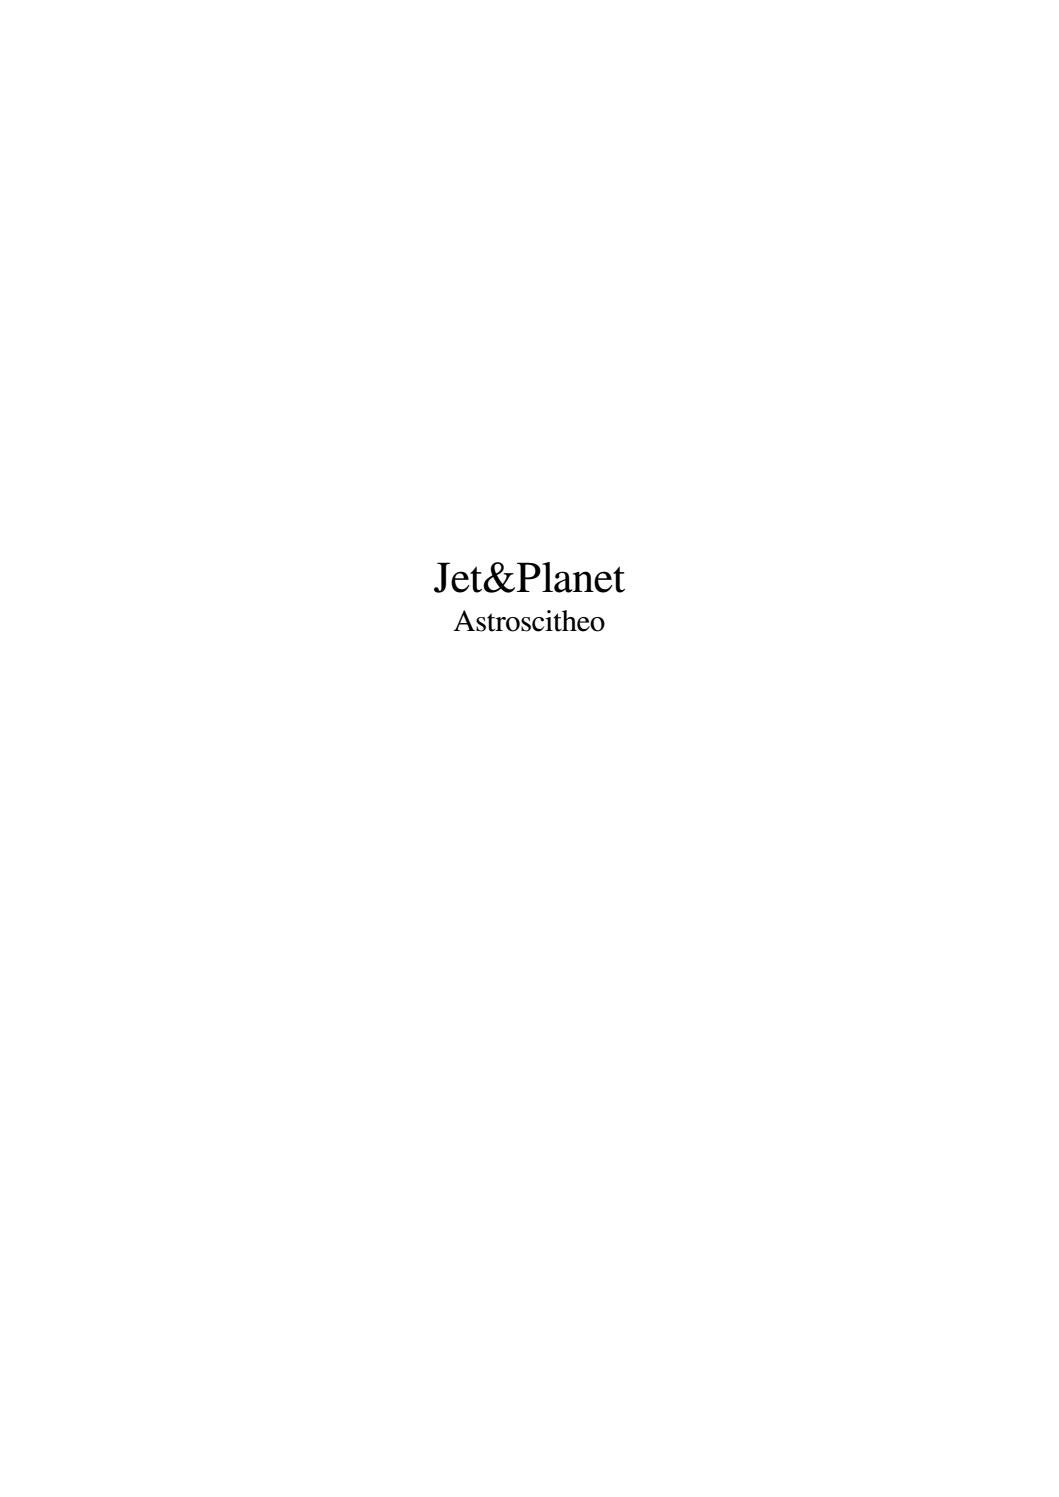 Jet&planet by Michael Crabtree - issuu